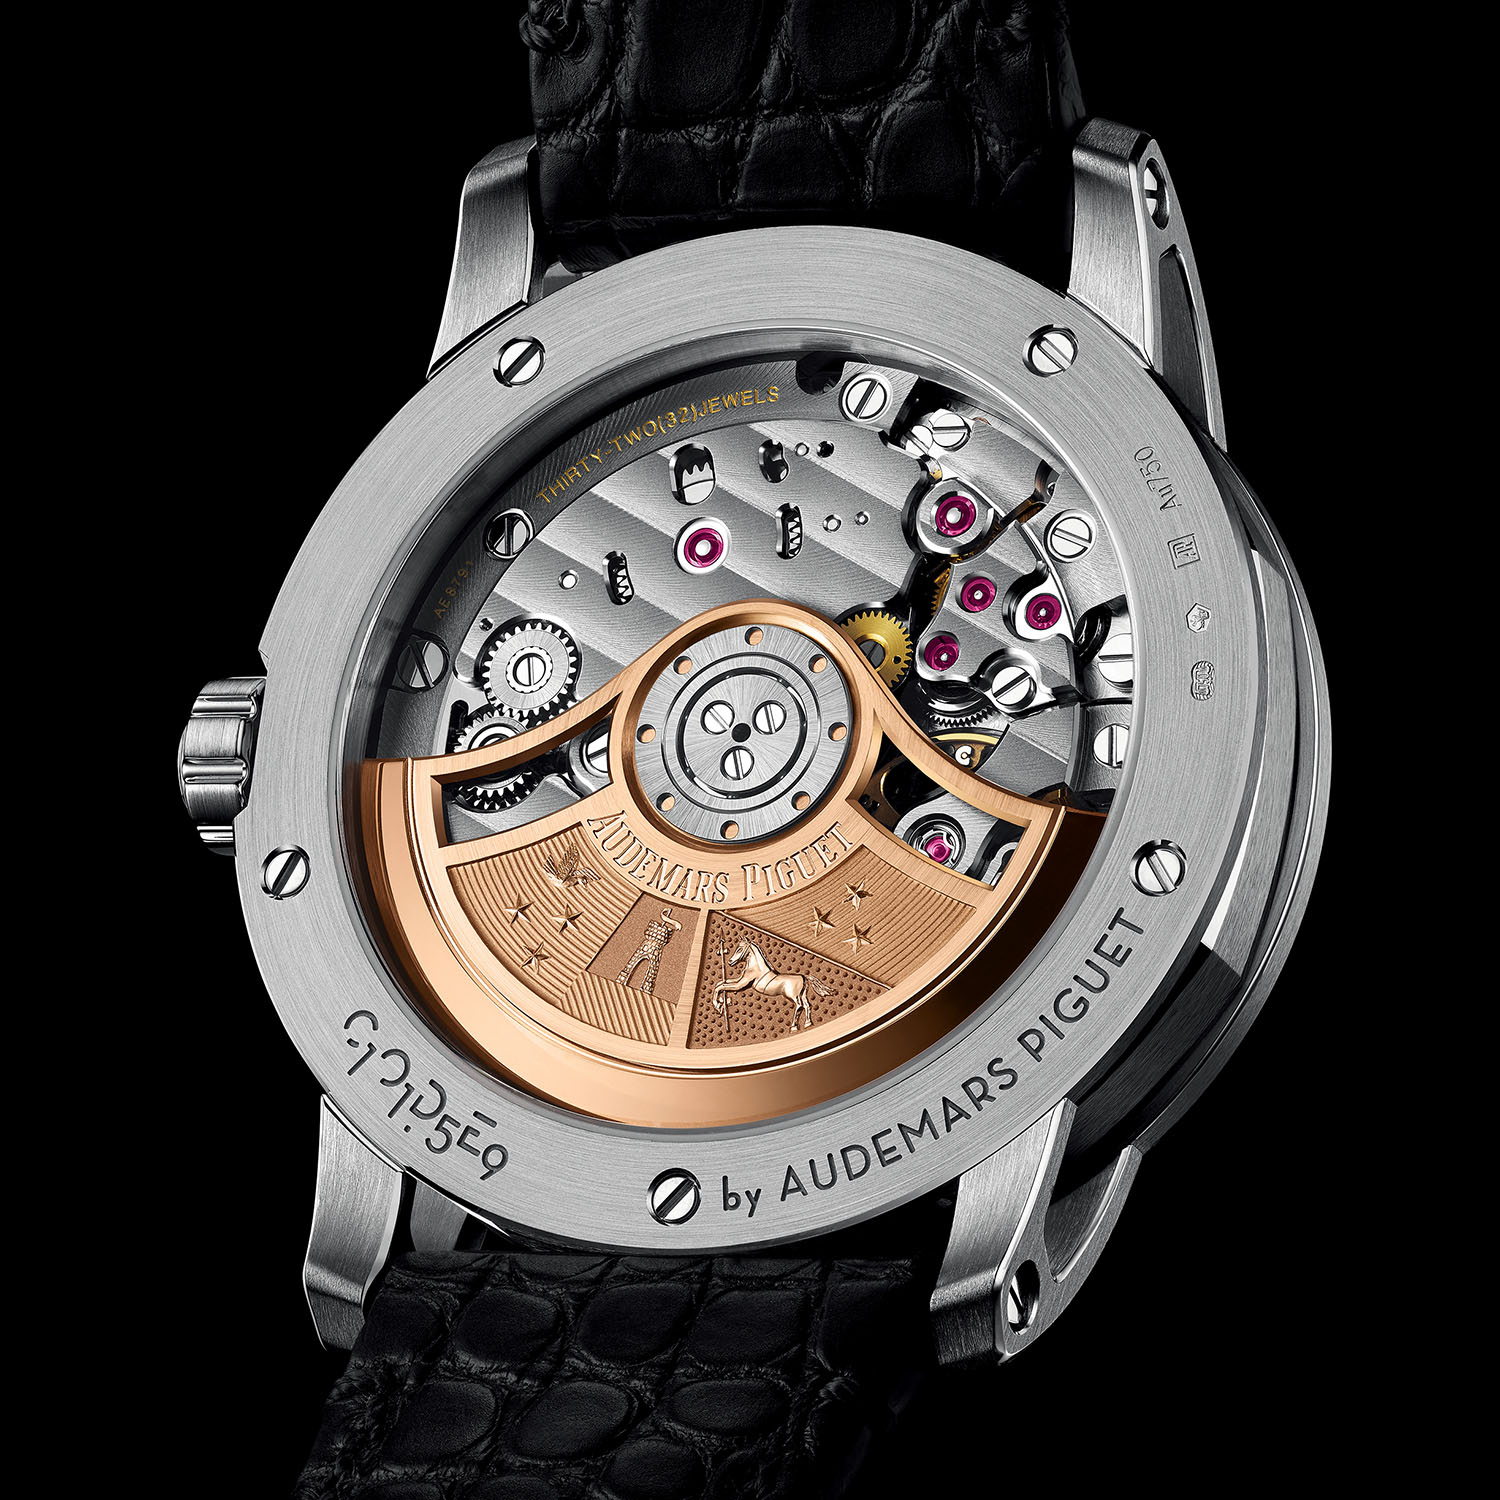 Code 11.59 by Audemars Piguet Selfwinding White Gold Smoked Blue Dial 15210BC.OO.A002KB.01